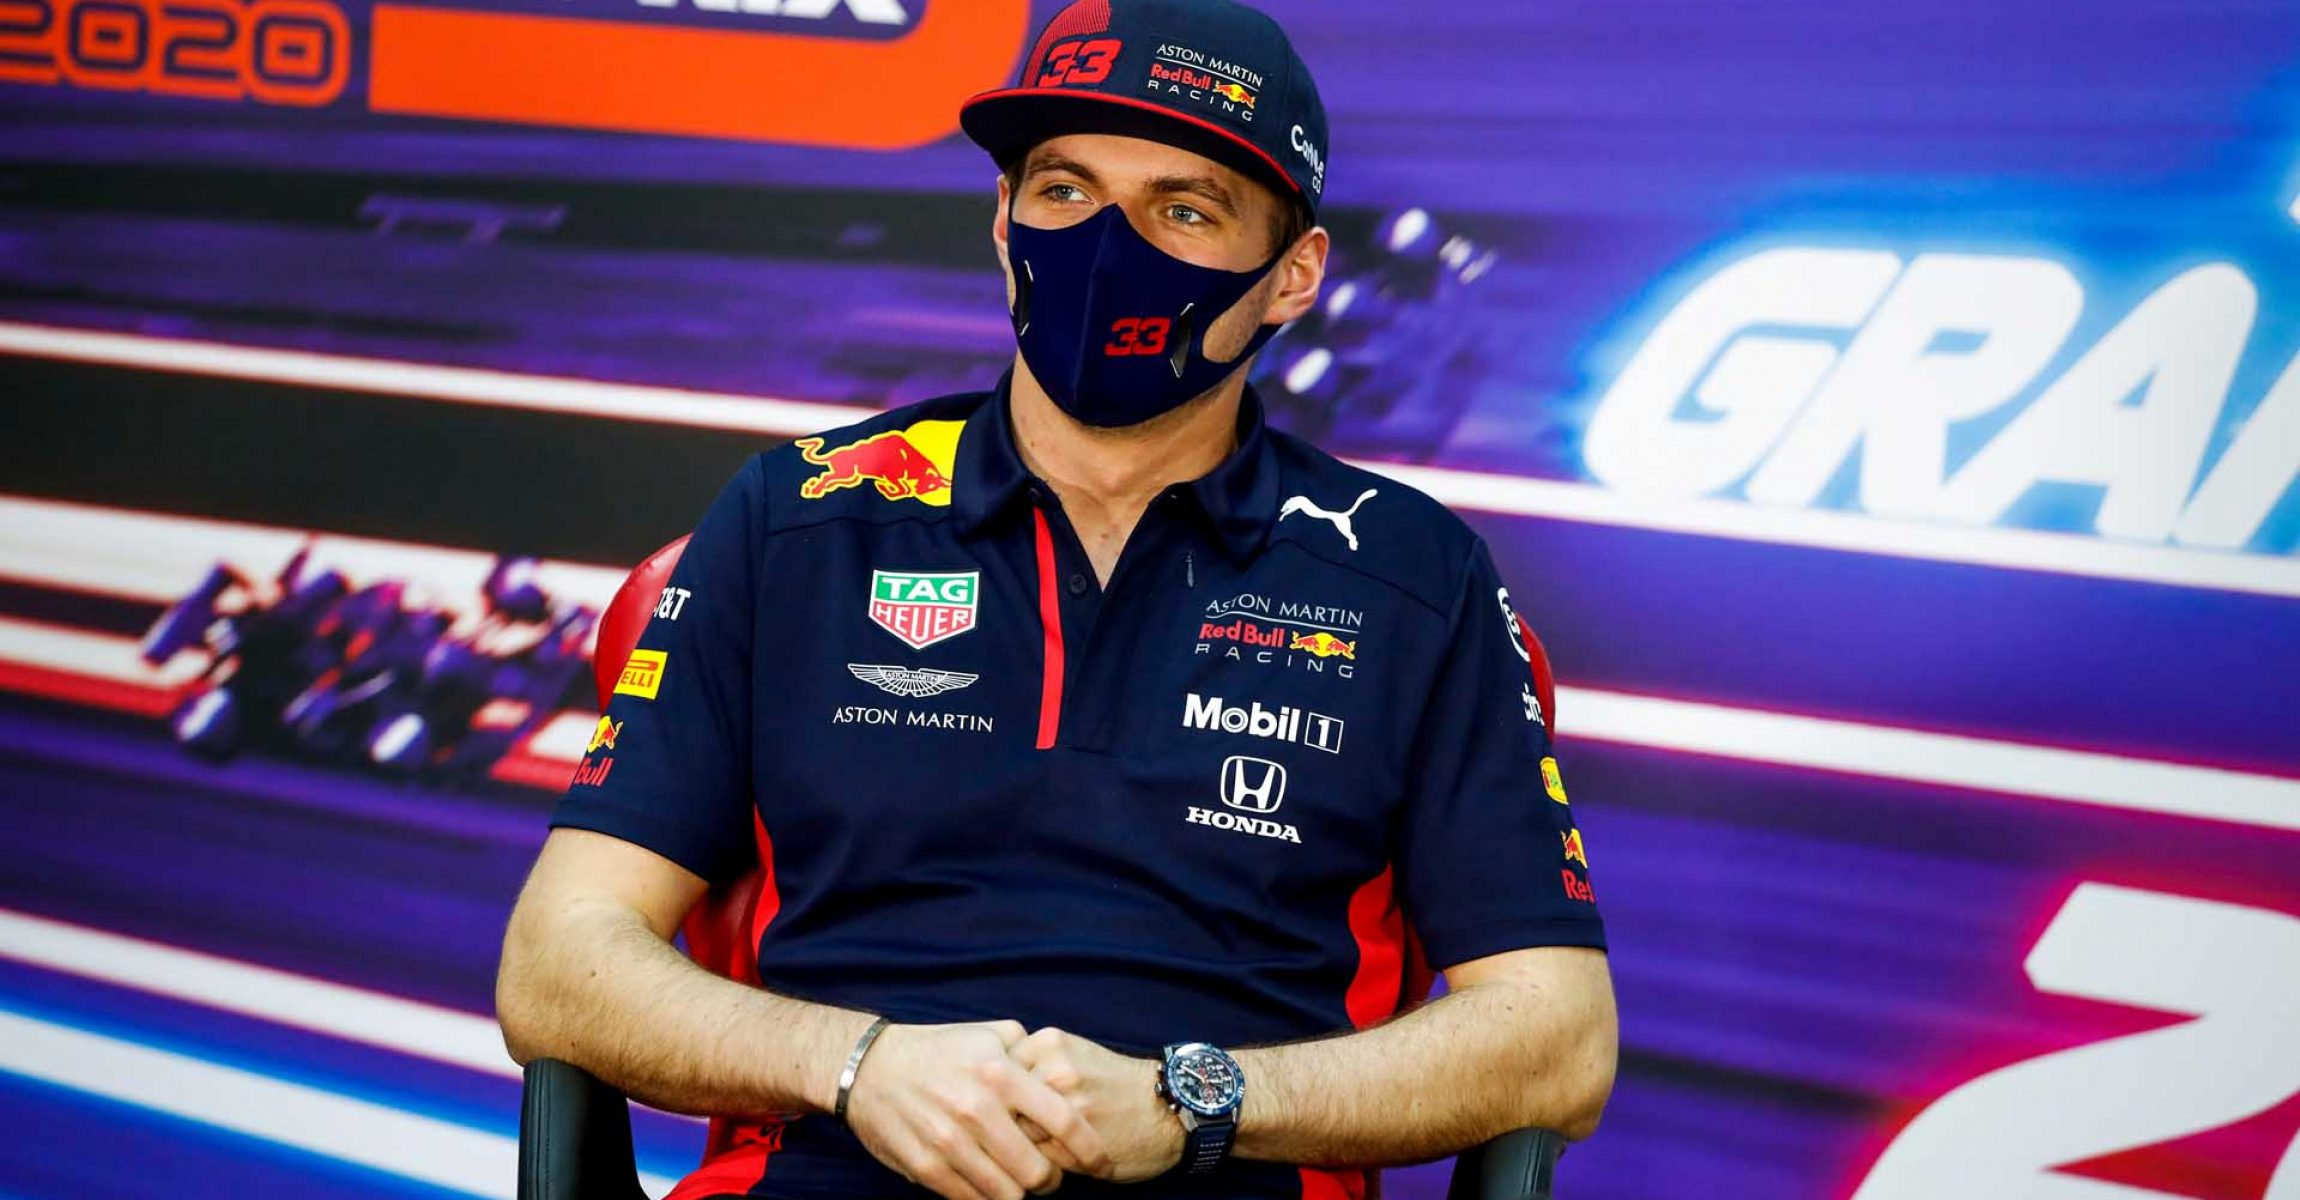 BAHRAIN, BAHRAIN - DECEMBER 03: Max Verstappen of Netherlands and Red Bull Racing talks in the Drivers Press Conference during previews ahead of the F1 Grand Prix of Sakhir at Bahrain International Circuit on December 03, 2020 in Bahrain, Bahrain. (Photo by Florent Gooden - Pool/Getty Images)